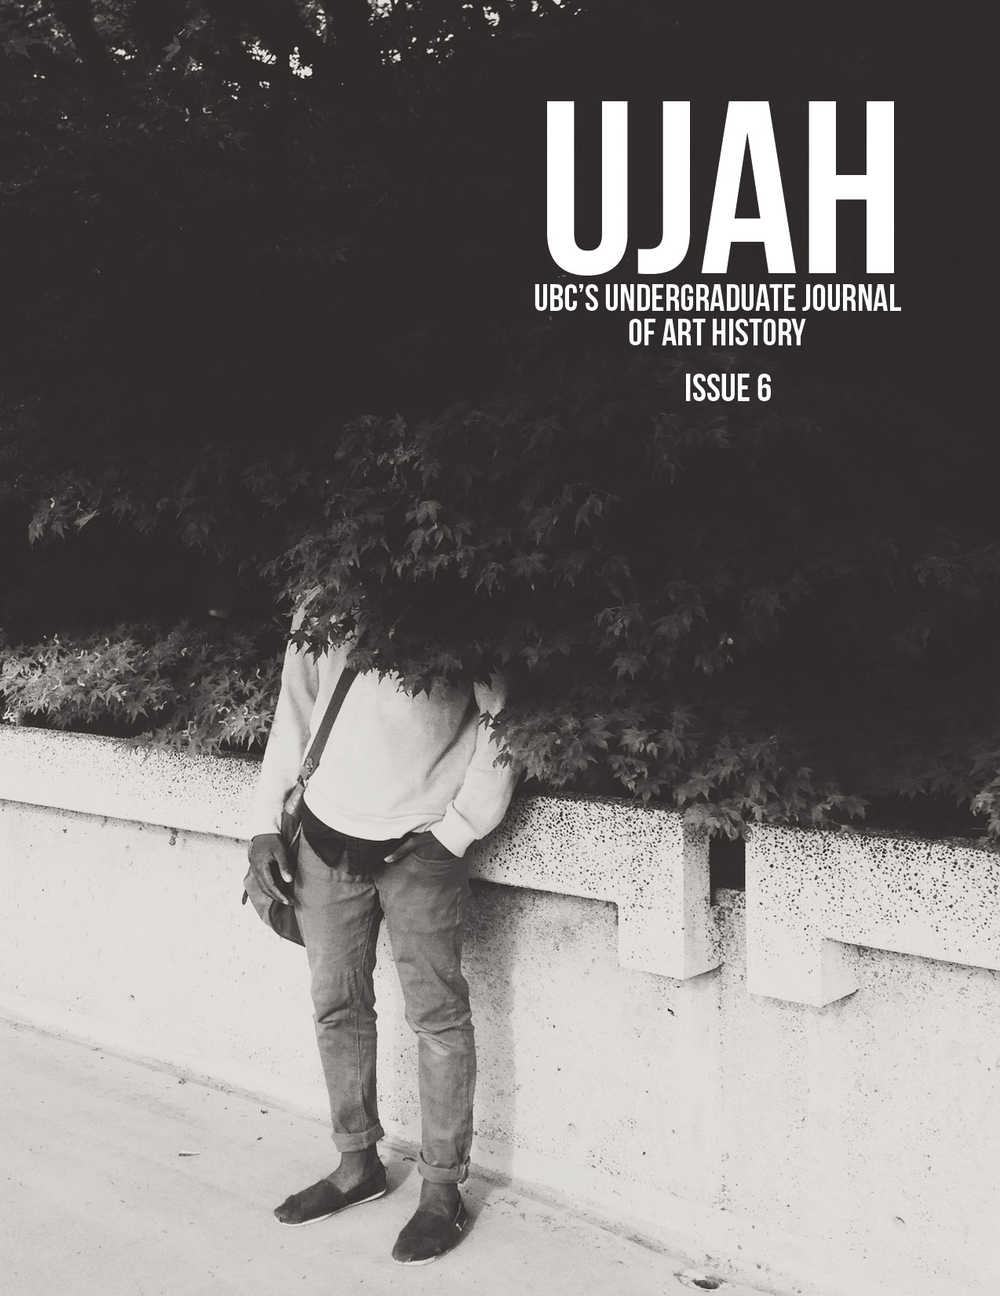 UJAH_Cover_JOL_Mar10 frontcover2copy.jpg